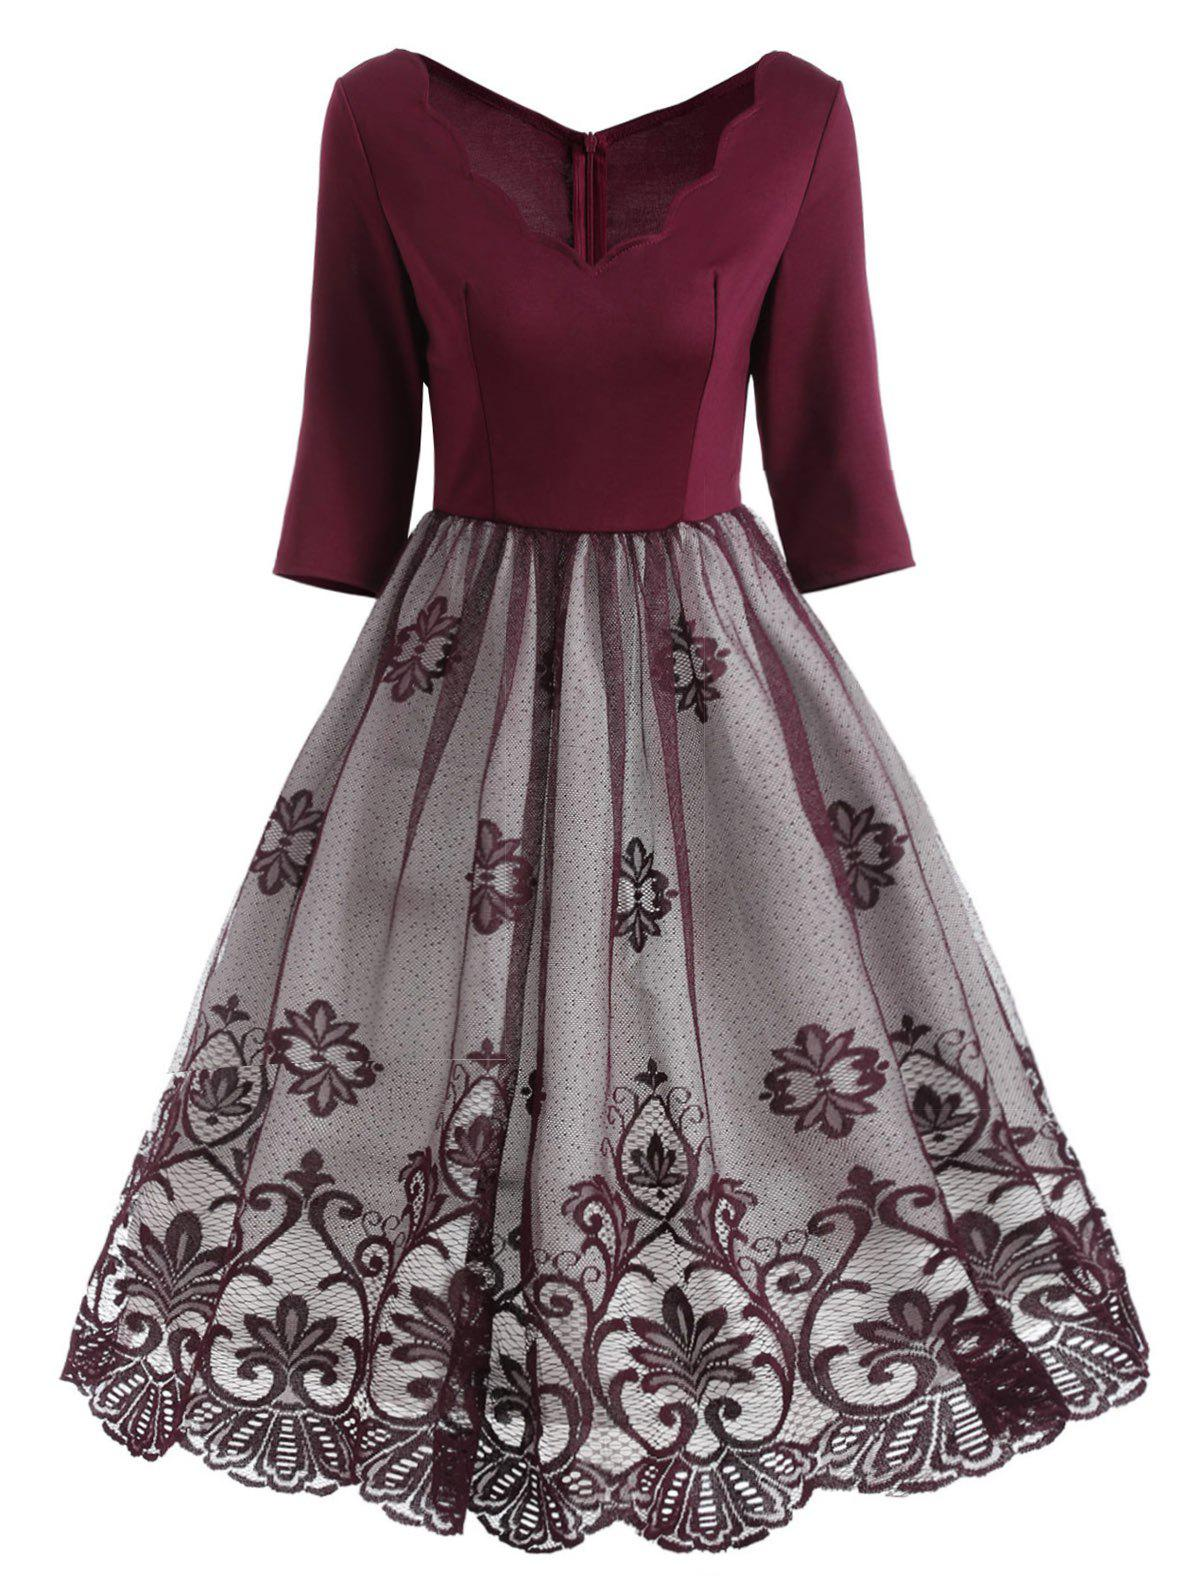 Floral Lace Panel V Neck Vintage Dress - WINE RED L